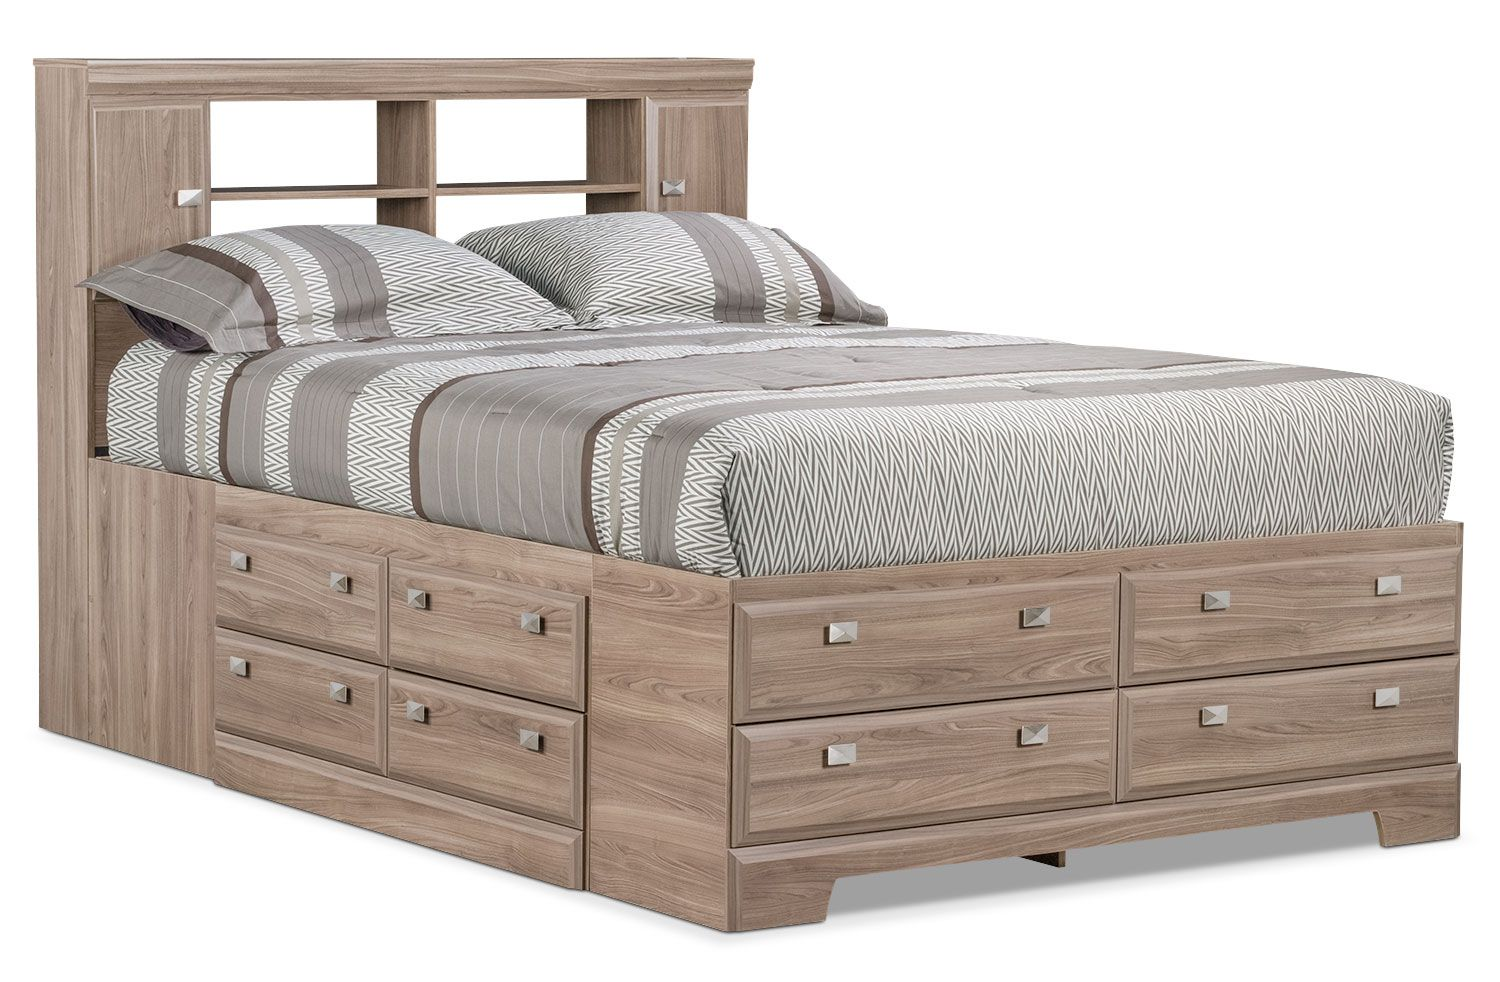 Queen Bookcase Storage Bed, Queen Size Headboard With Storage And Lights